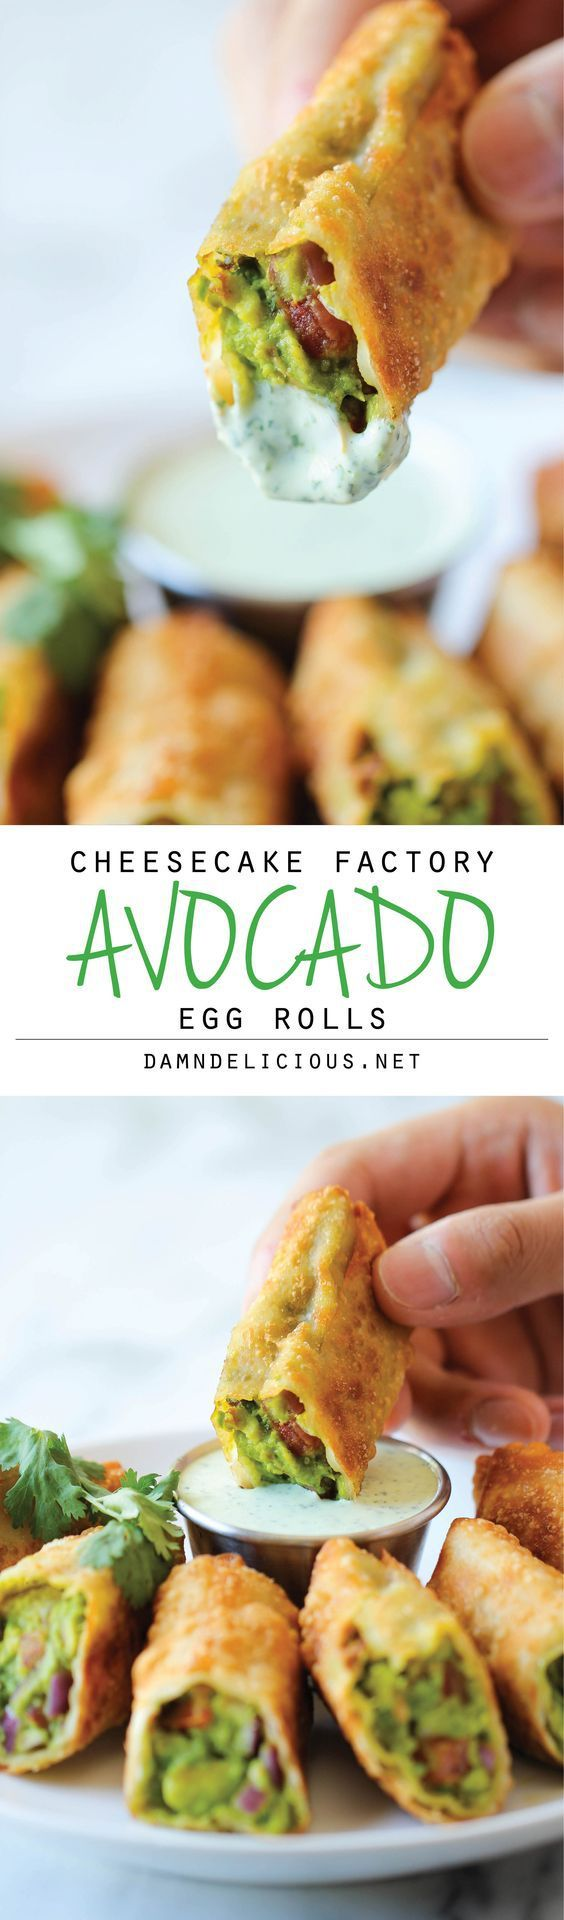 Cheesecake Factory Avocado Egg Rolls Recipe via damn delicious - The Best Easy Party Appetizers and Finger Foods Recipes - Quick family friendly snacks for Holidays, Tailgating and Super Bowl Parties!